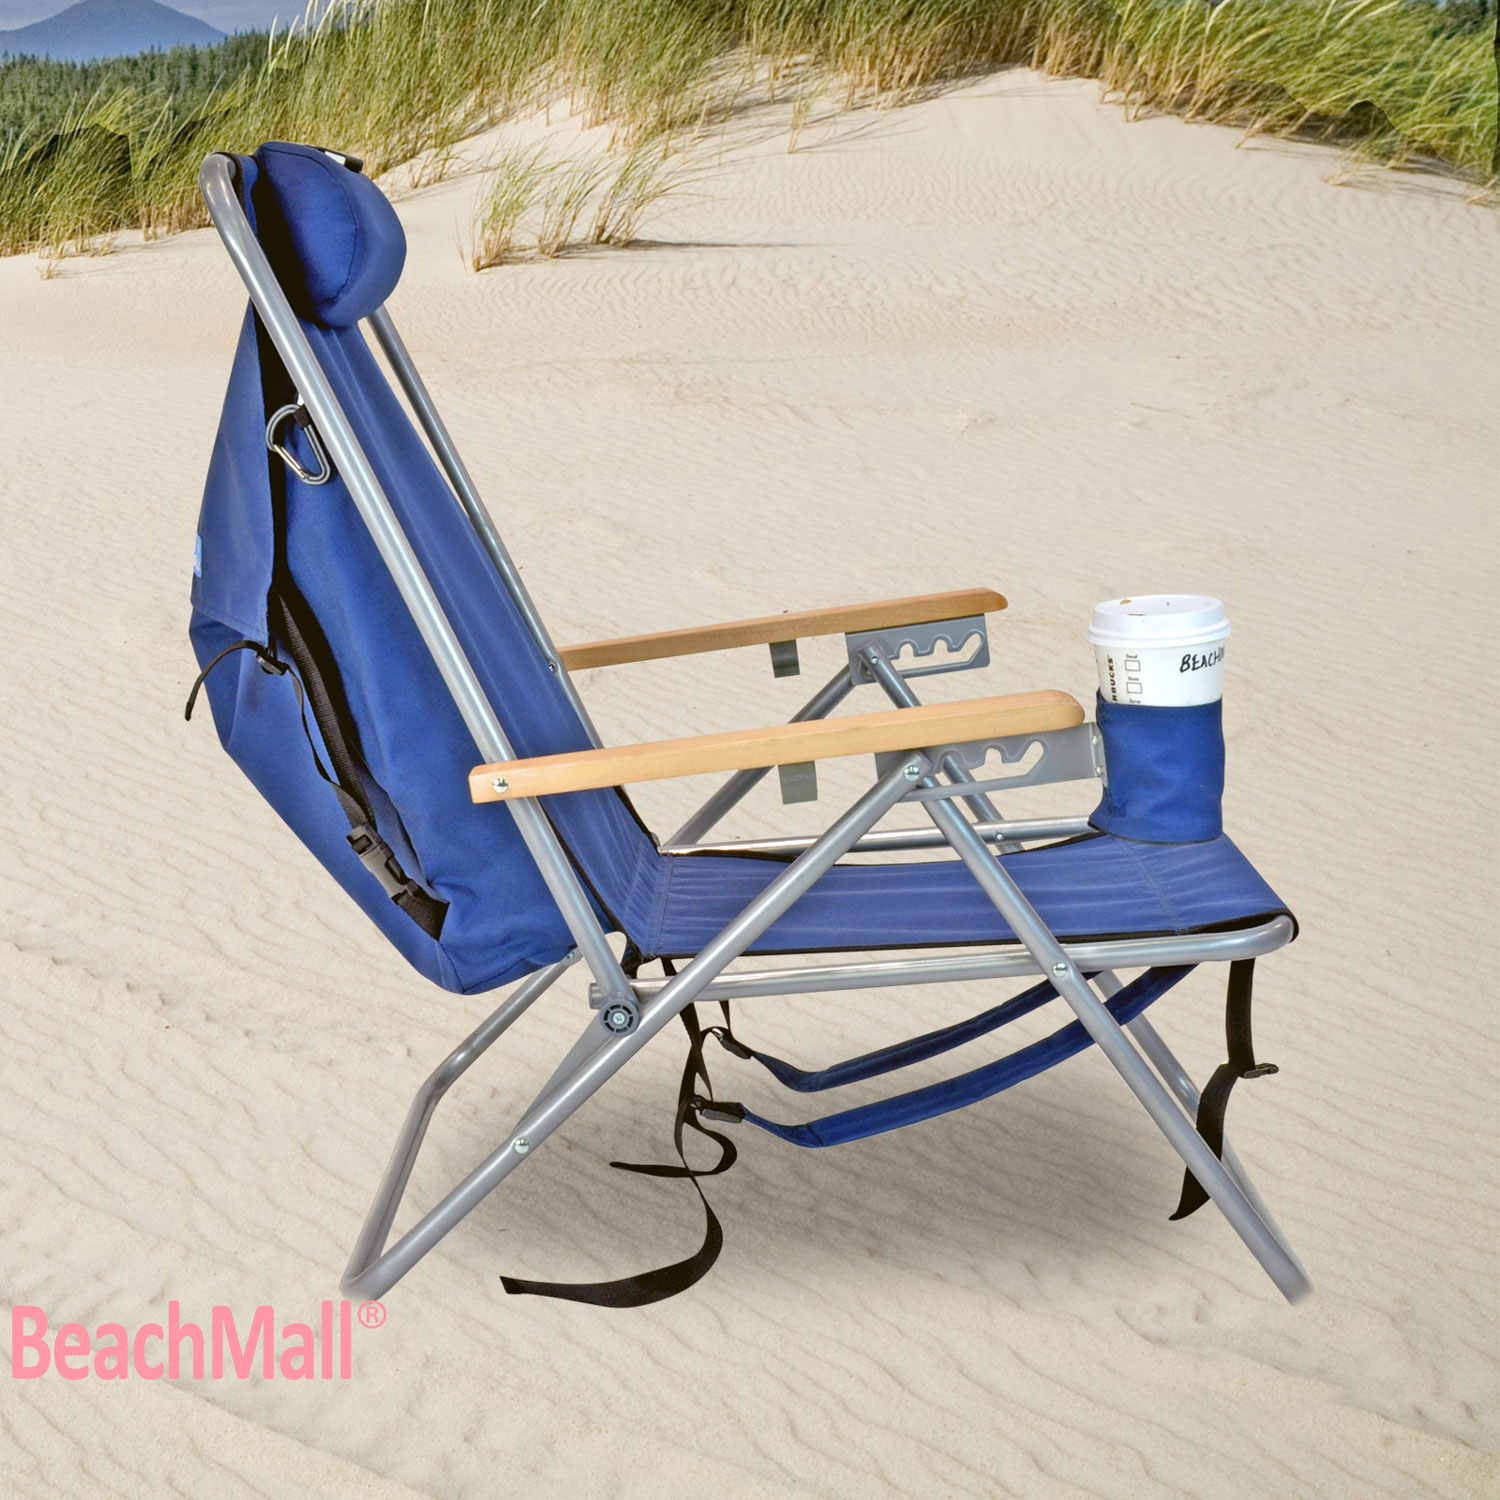 Deluxe Steel Backpack Chair Beach / C&ing with Storage Pouch - Set of 2 Chairs 762770607987 | eBay  sc 1 st  eBay & Deluxe Steel Backpack Chair Beach / Camping with Storage Pouch - Set ...